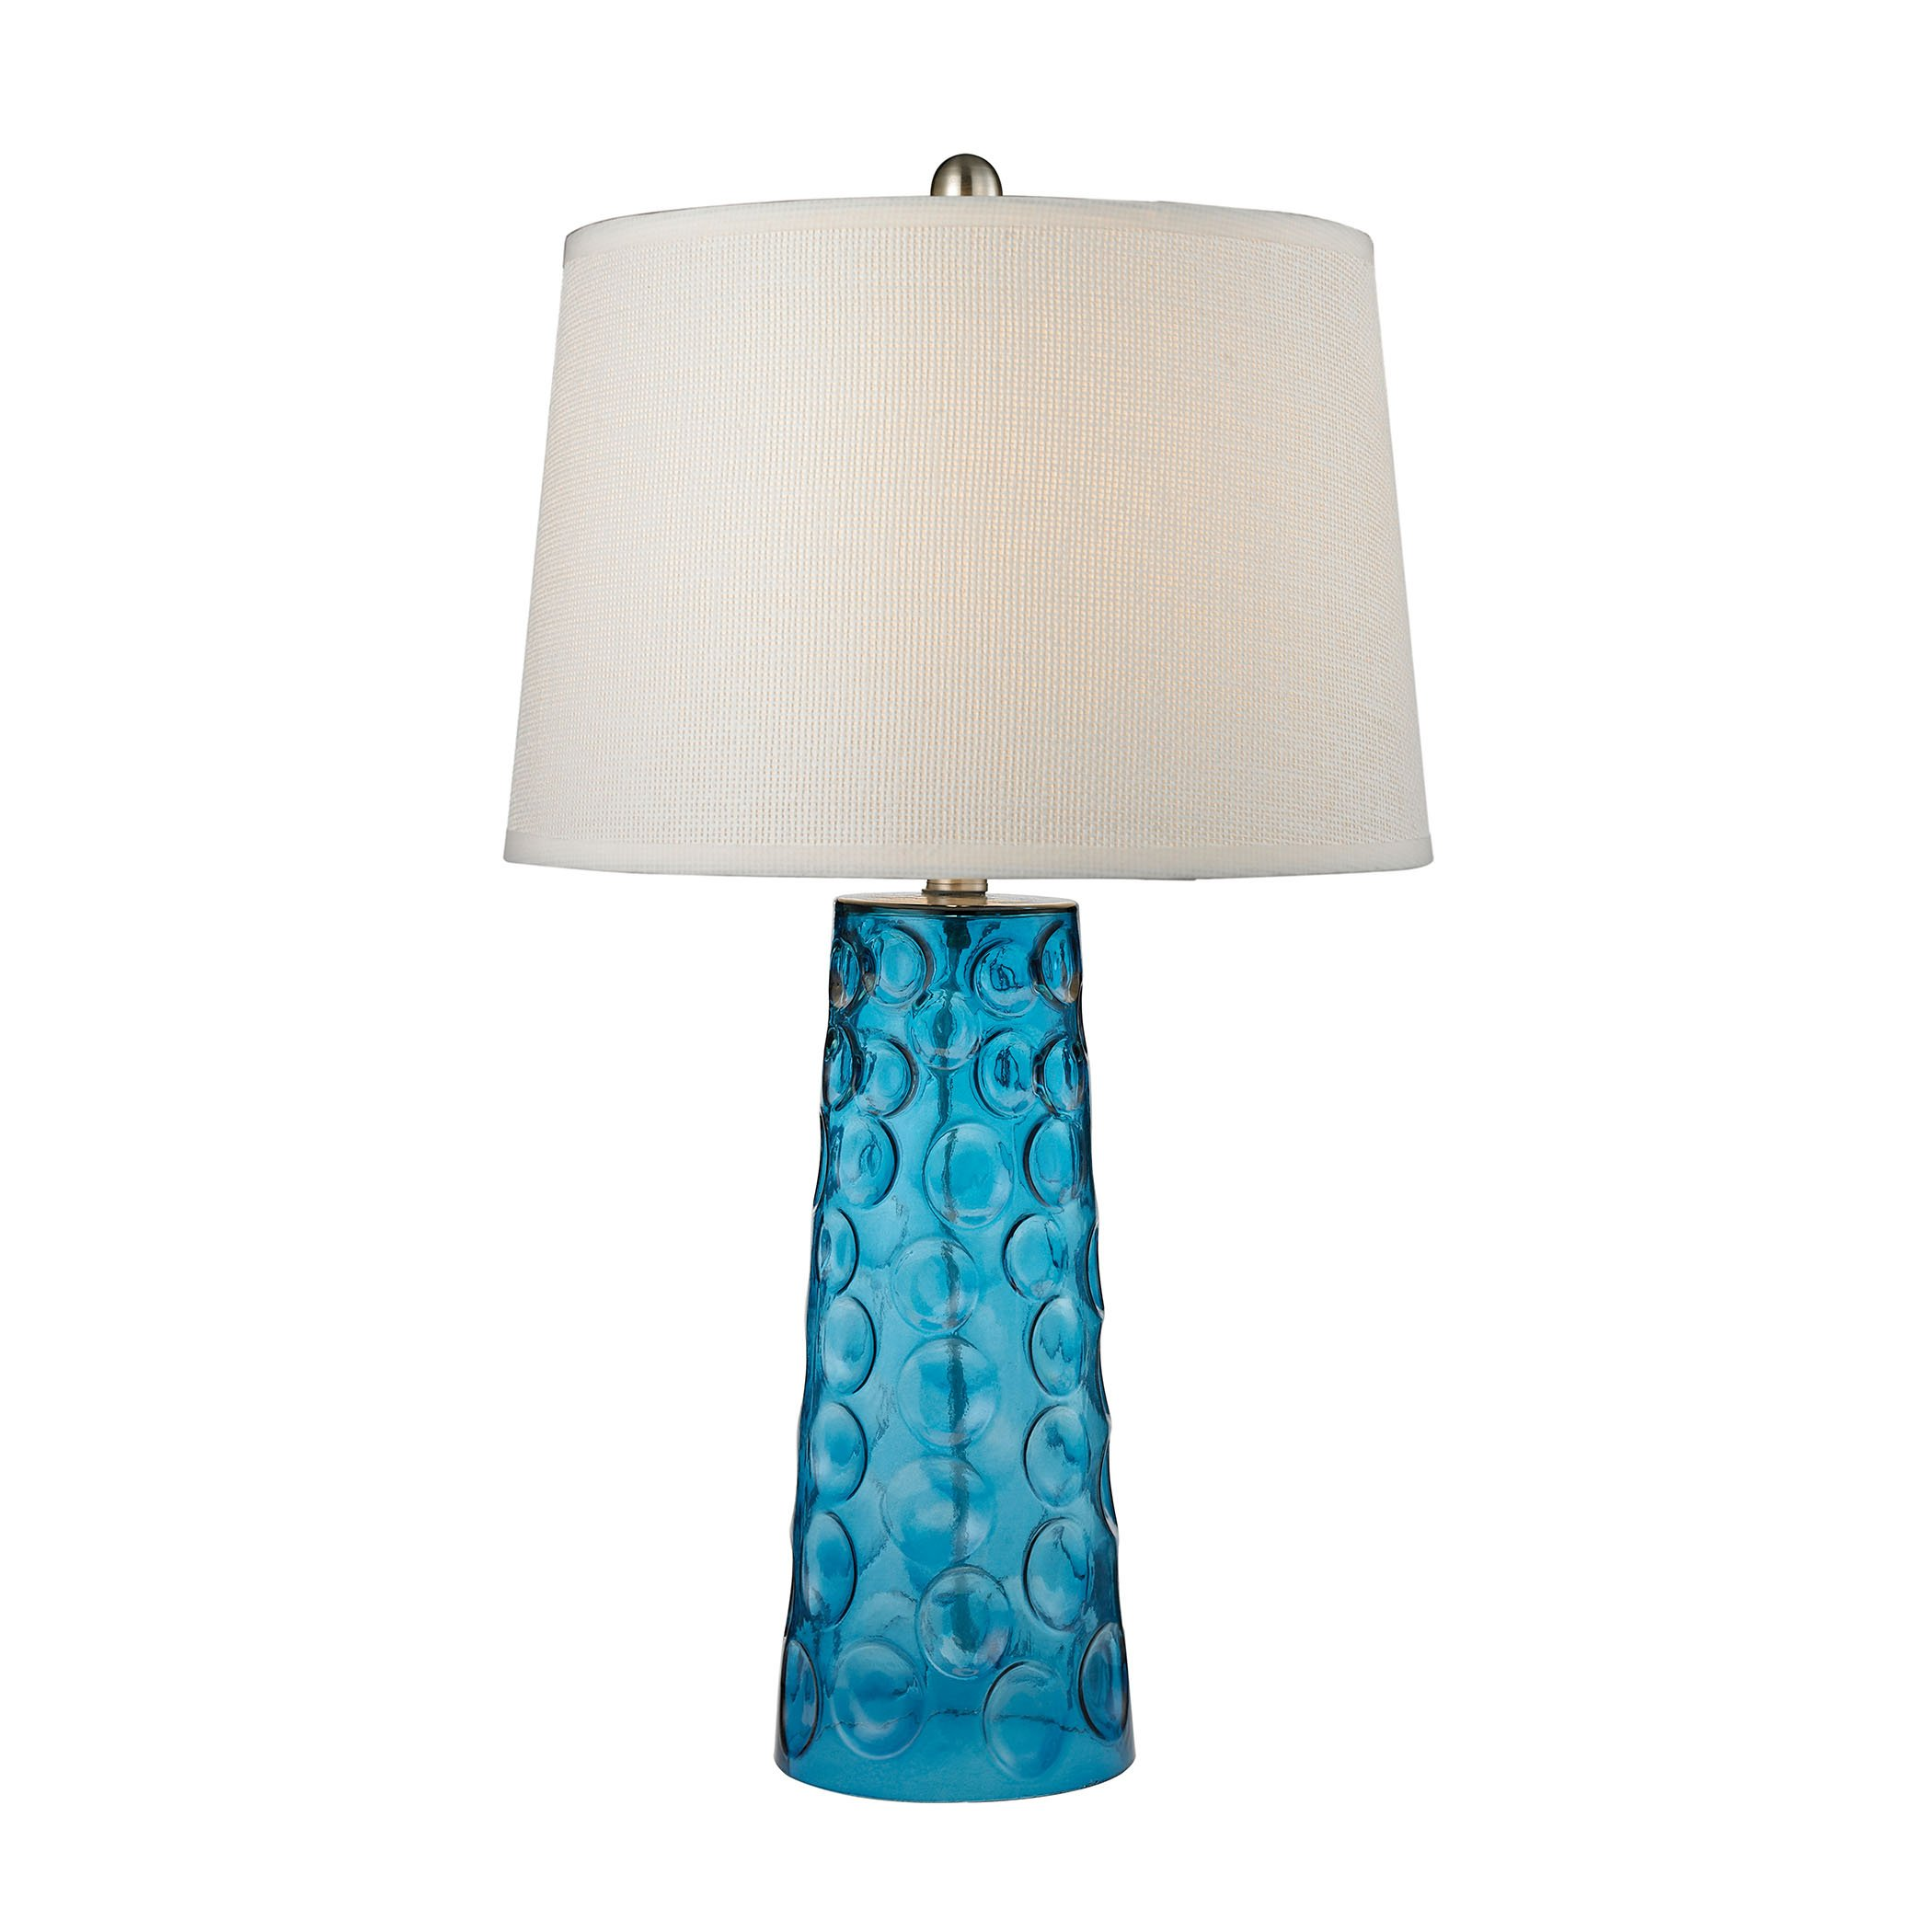 Dimond D2619 Lighting Hammered Glass Table Lamp, 15'' x 15'' x 27''